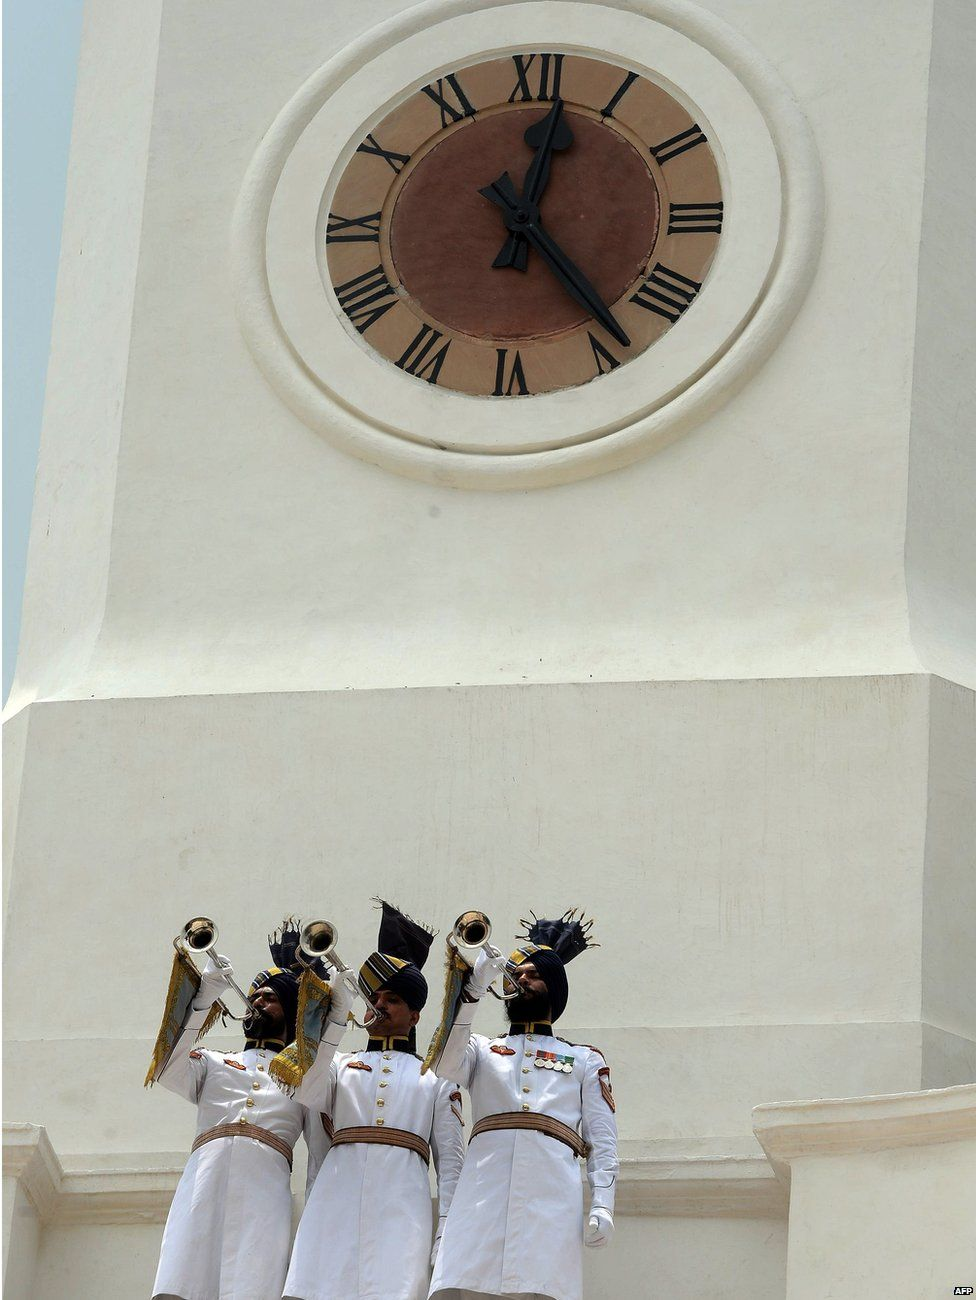 Indian President's ceremonial guards blow trumpets during the inauguration by President Pranab Mukherjee of a restored clock tower inside The President's Estate in New Delhi on 24 July 2015, to mark the completion of the third year of his presidency.